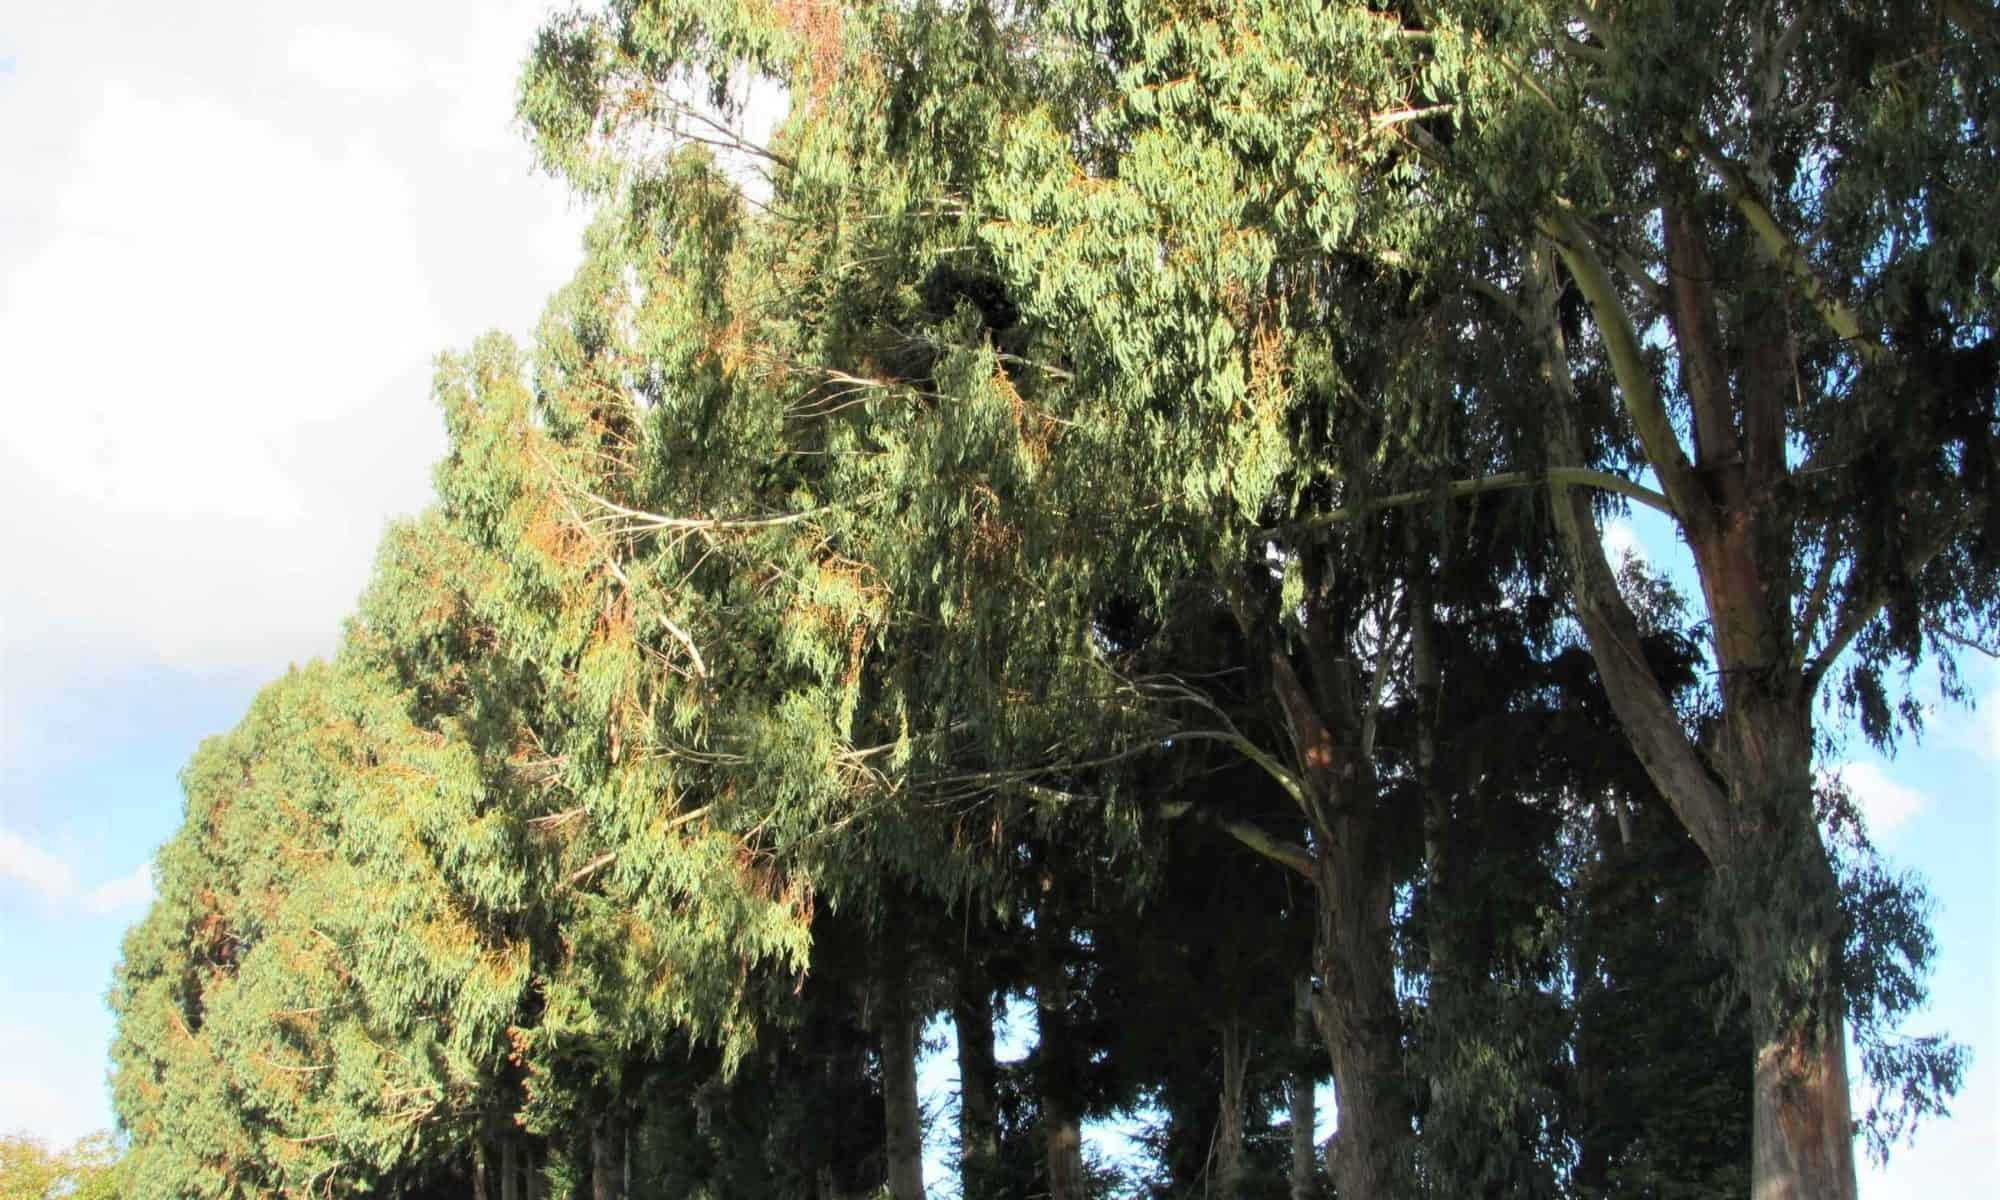 Gum trees tower over the house.